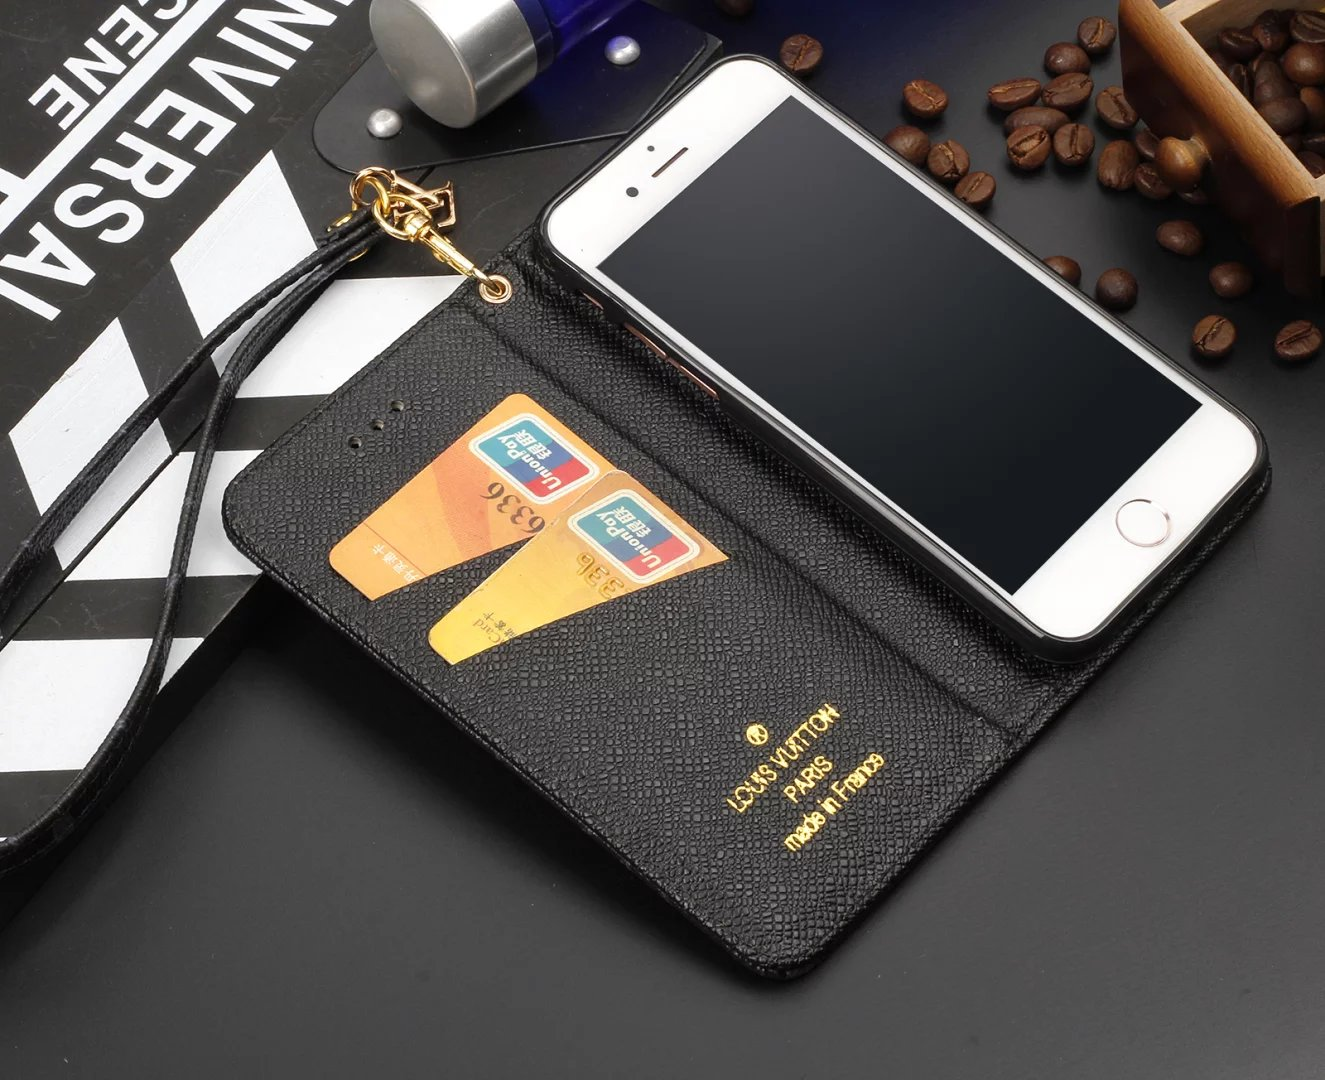 iphone hülle bedrucken lassen günstig iphone hülle mit eigenem foto Louis Vuitton iphone7 Plus hülle hülle iphone 7 Plus ilikon apple iphone 7 Plus hutzhülle cover für handy 7lbst gestalten iphone 7 Plus hülle hardca7 handy hüllen günstig iphone 6 datum